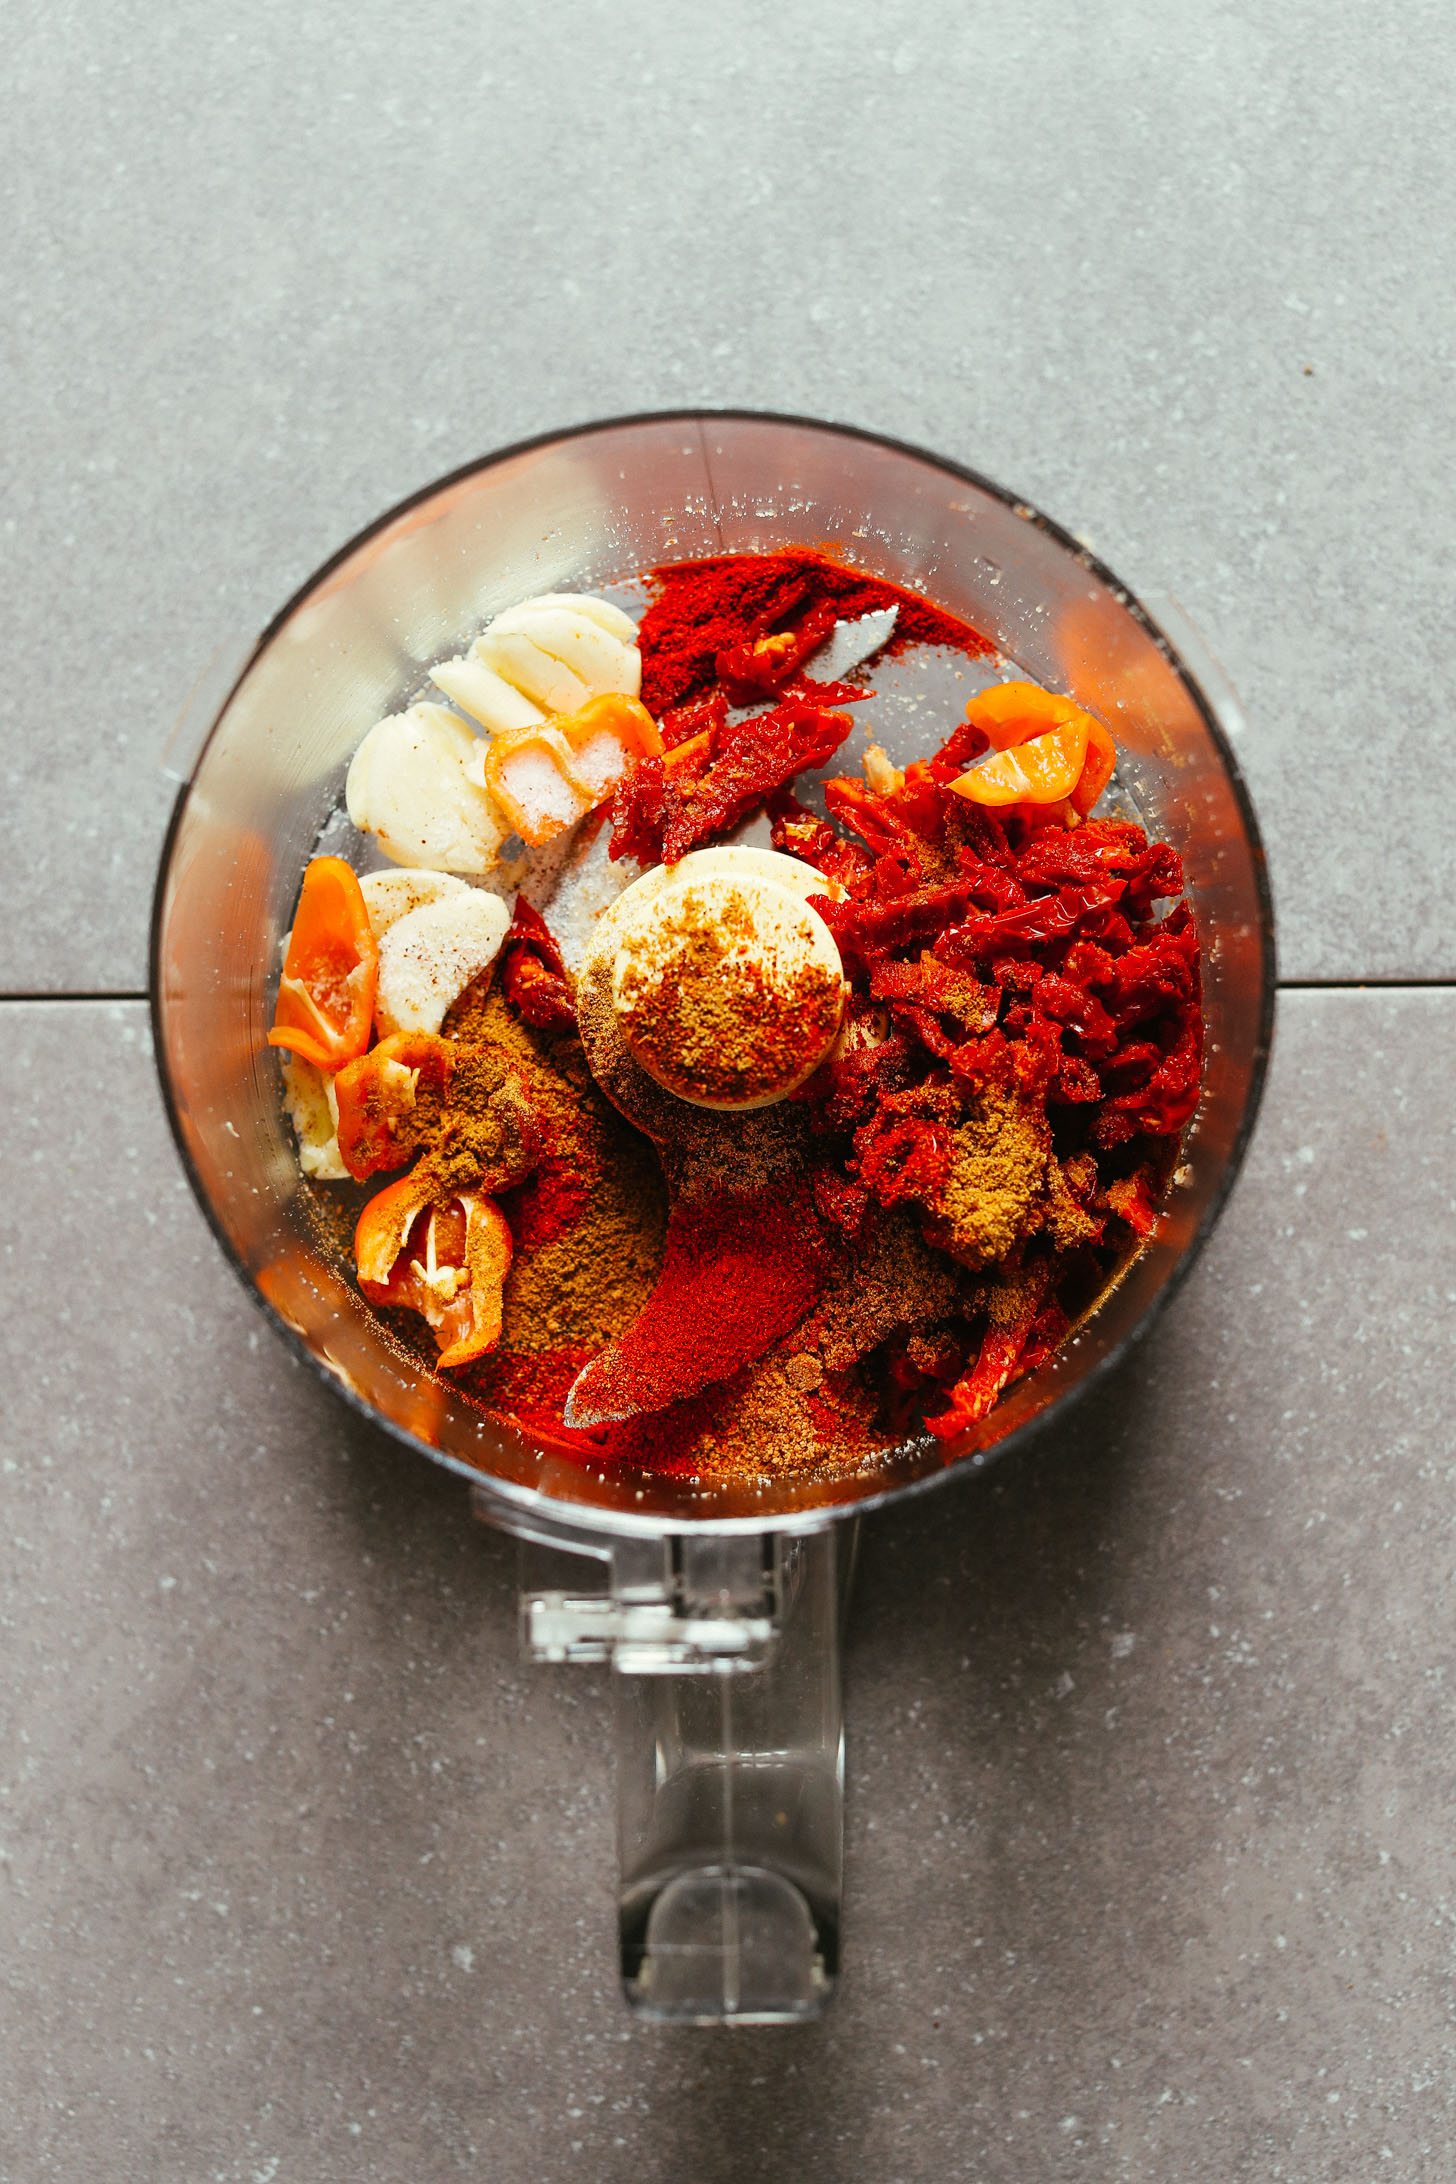 Food processor with Mexican spices and flavors for making Vegan Taco Meat